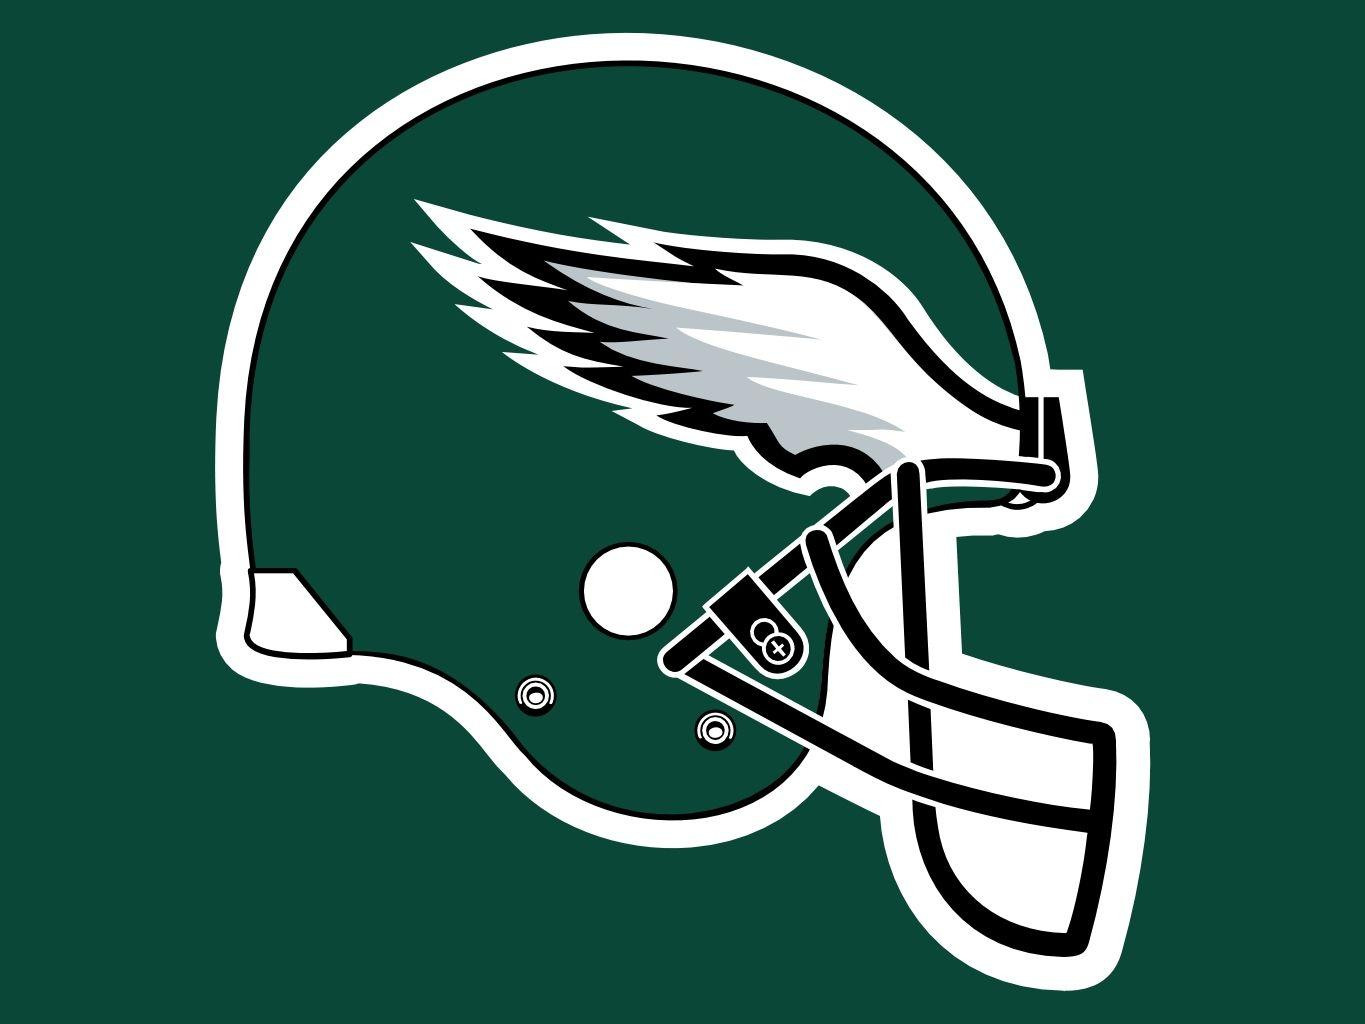 wallpaper eagles logo - photo #23